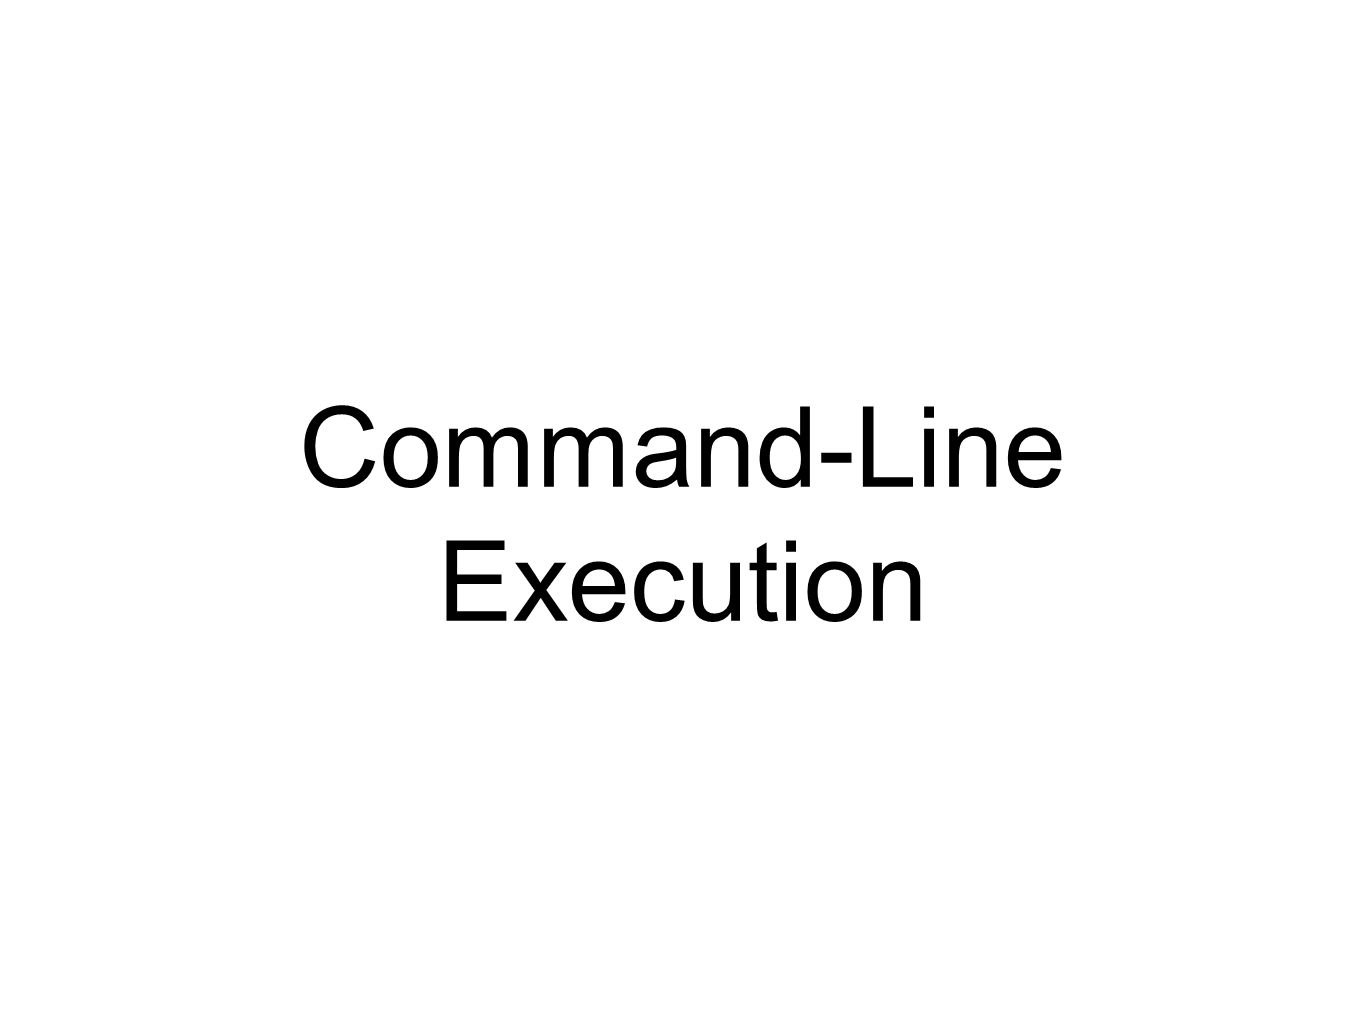 Command-Line Execution